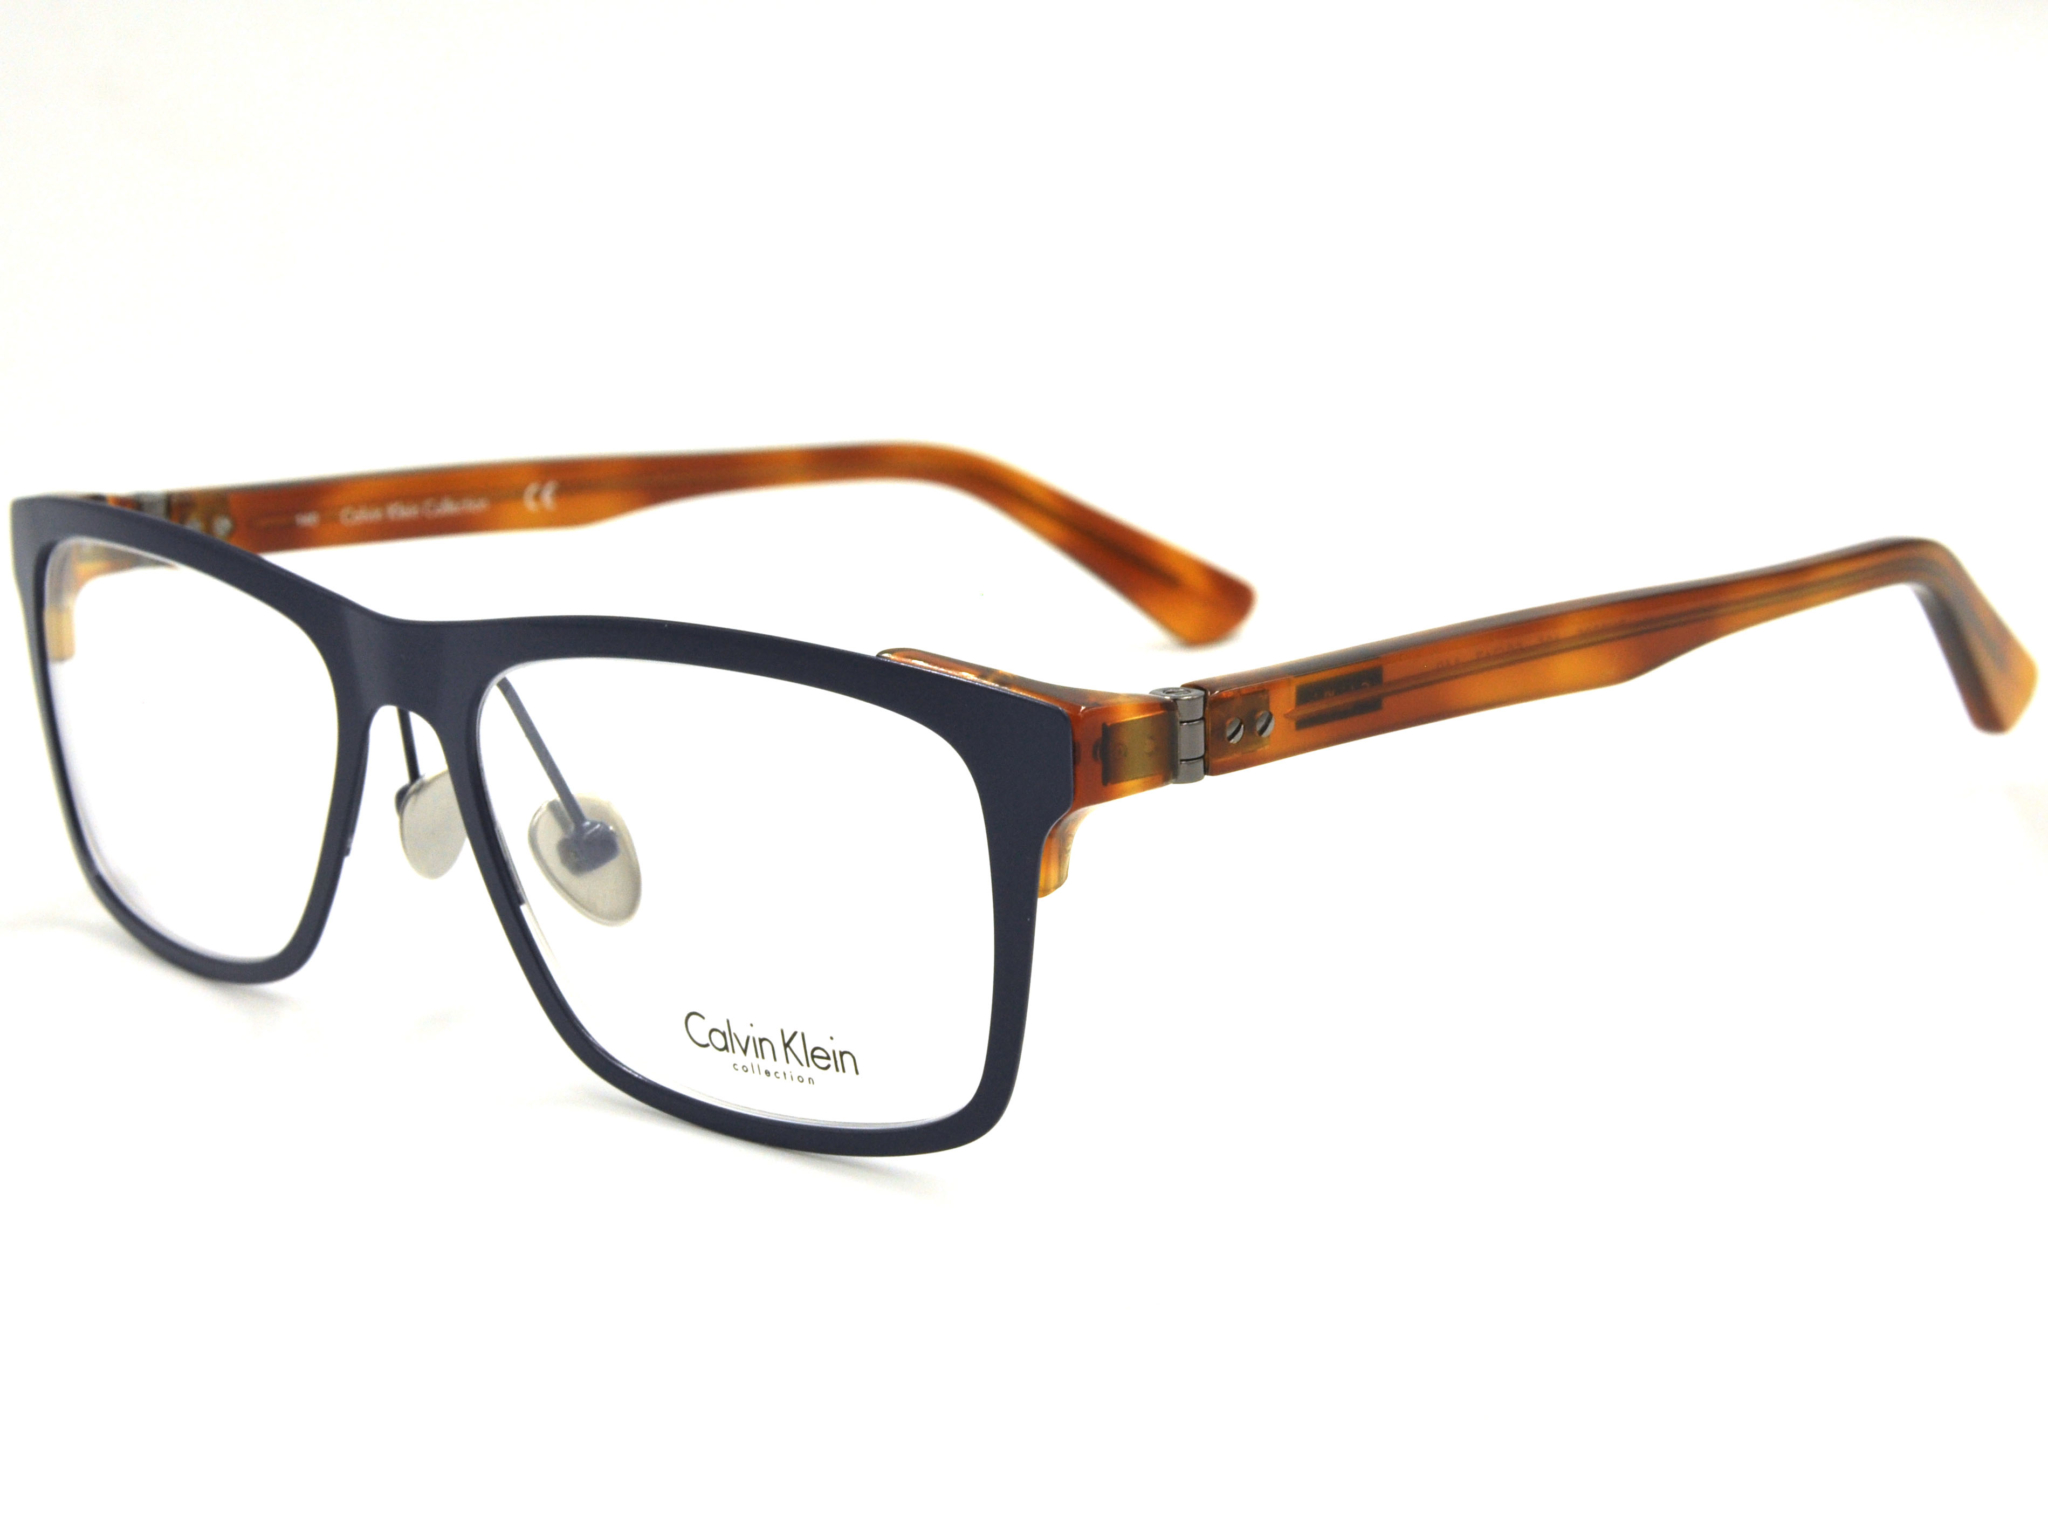 Calvin klein CK8025 405 UNISEX Prescription Glasses 2020